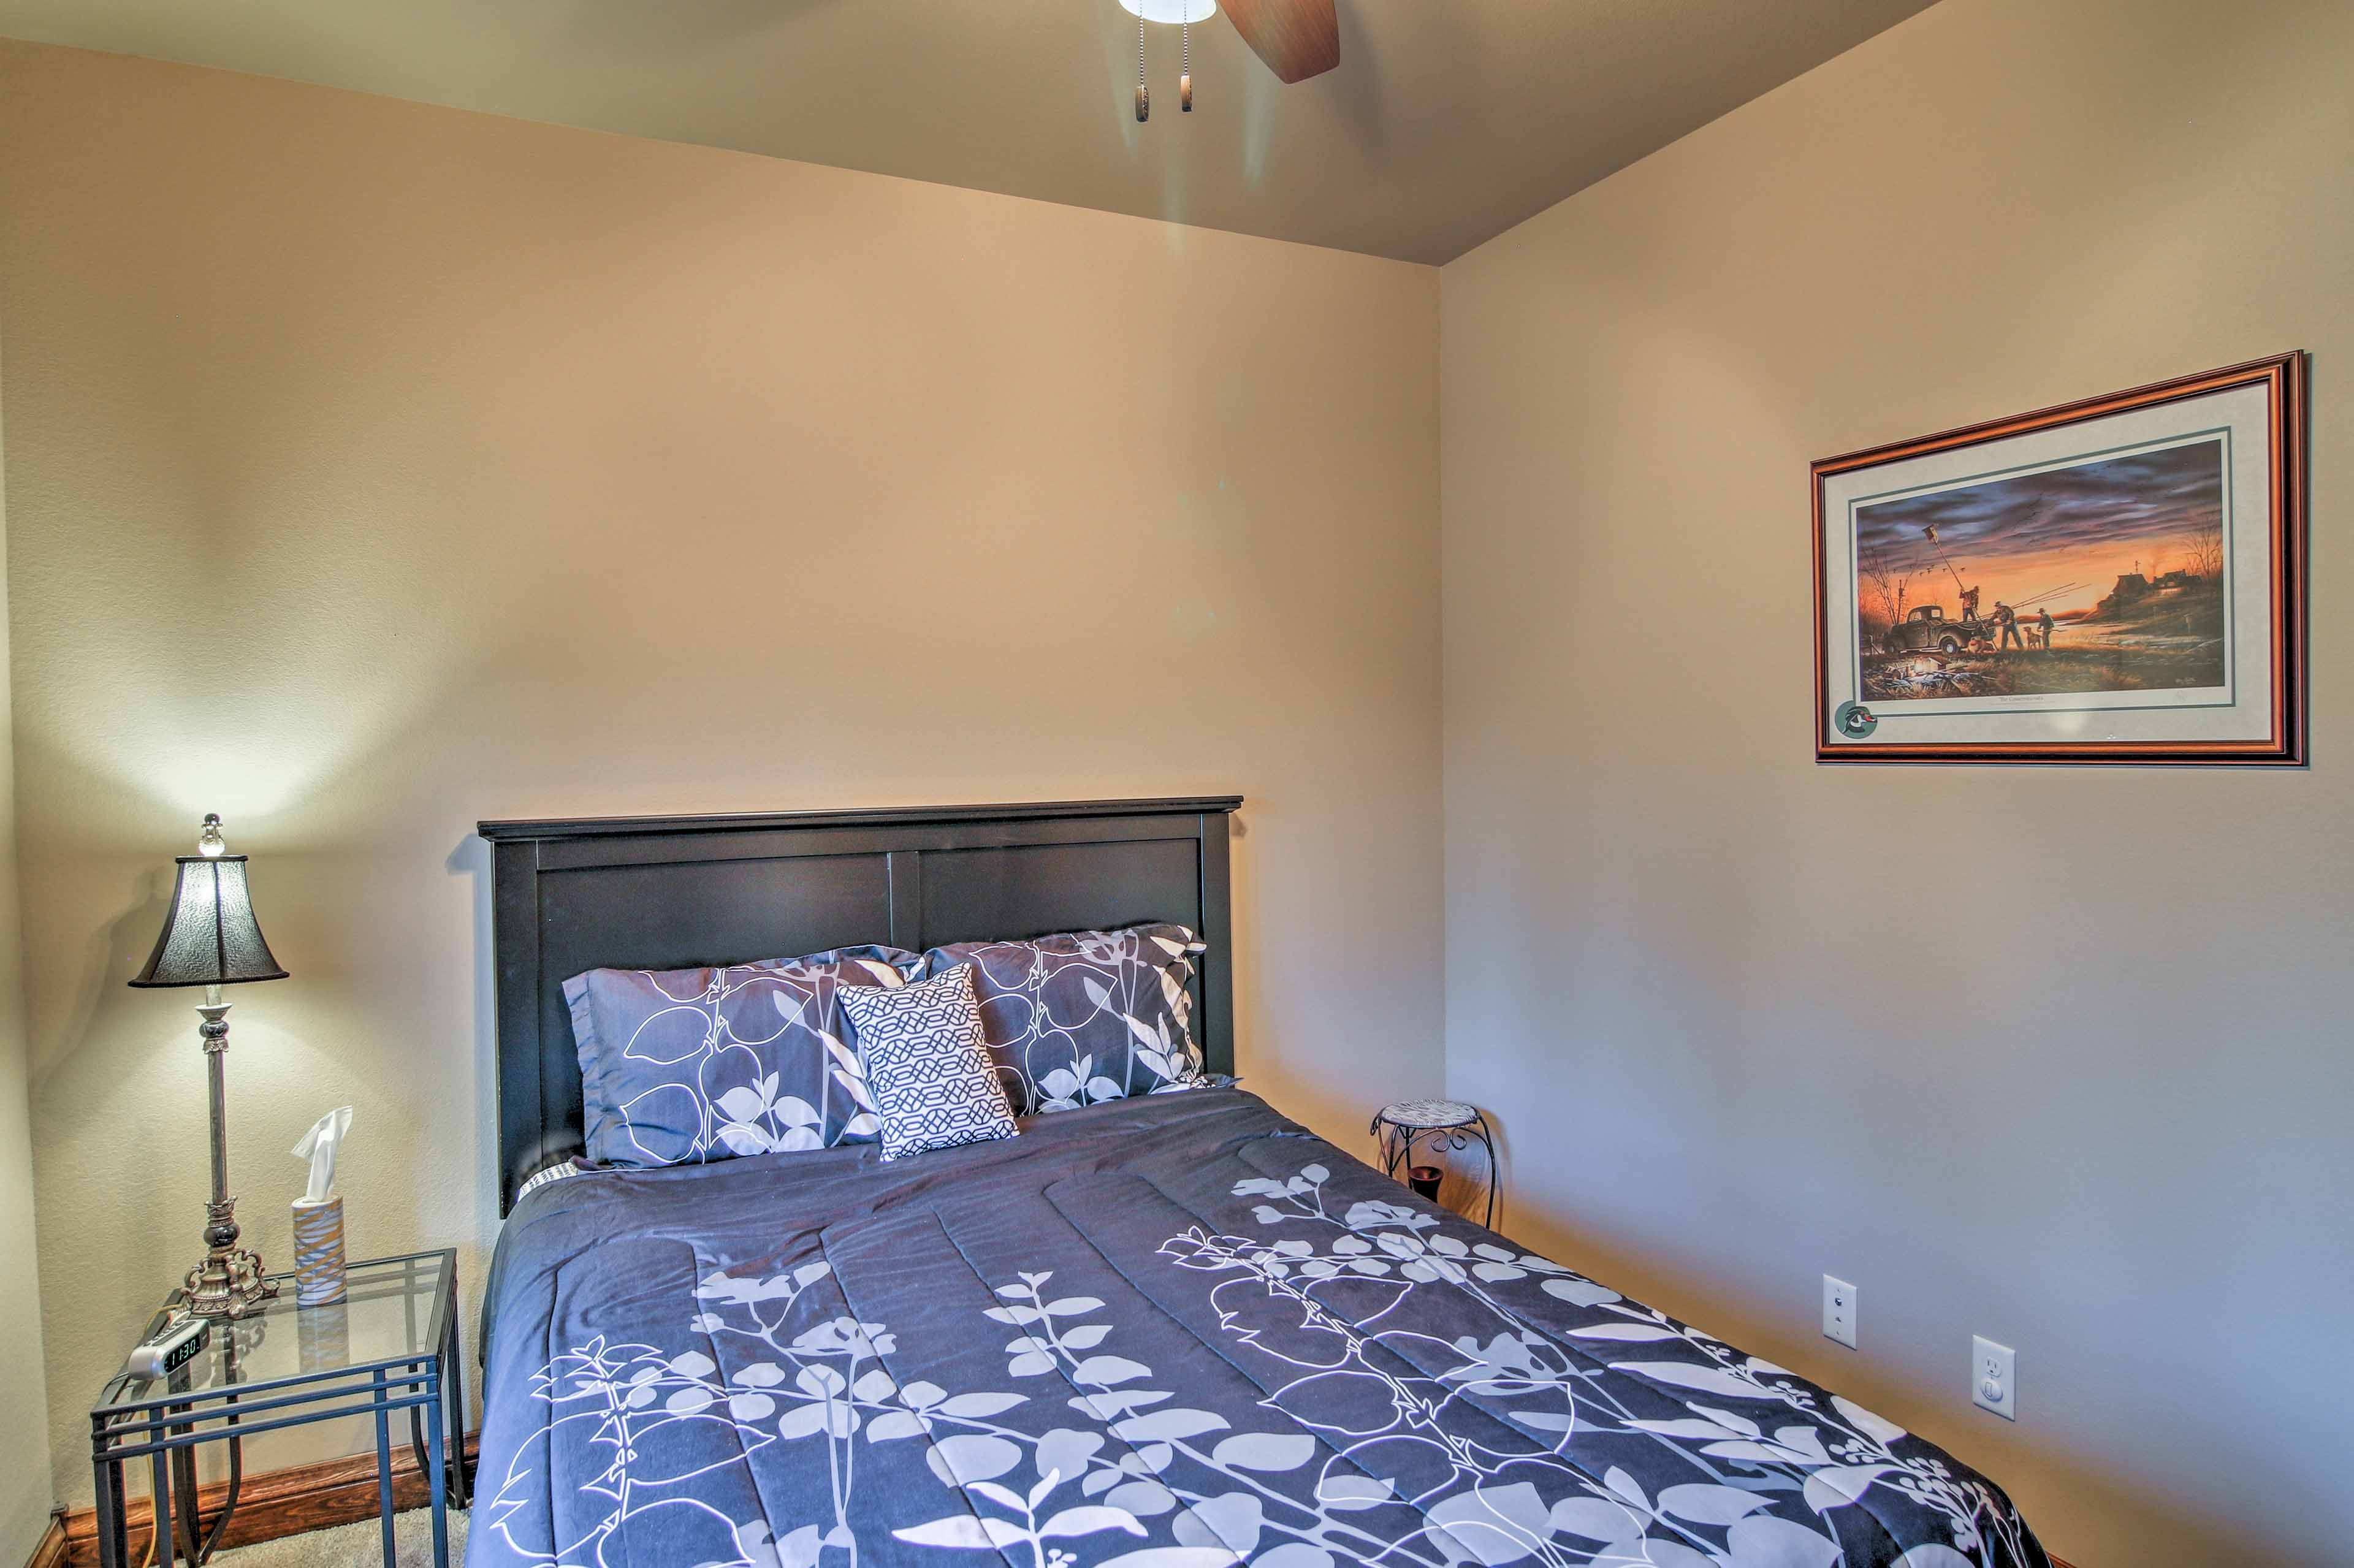 The second bedroom features a cozy queen-sized bed.